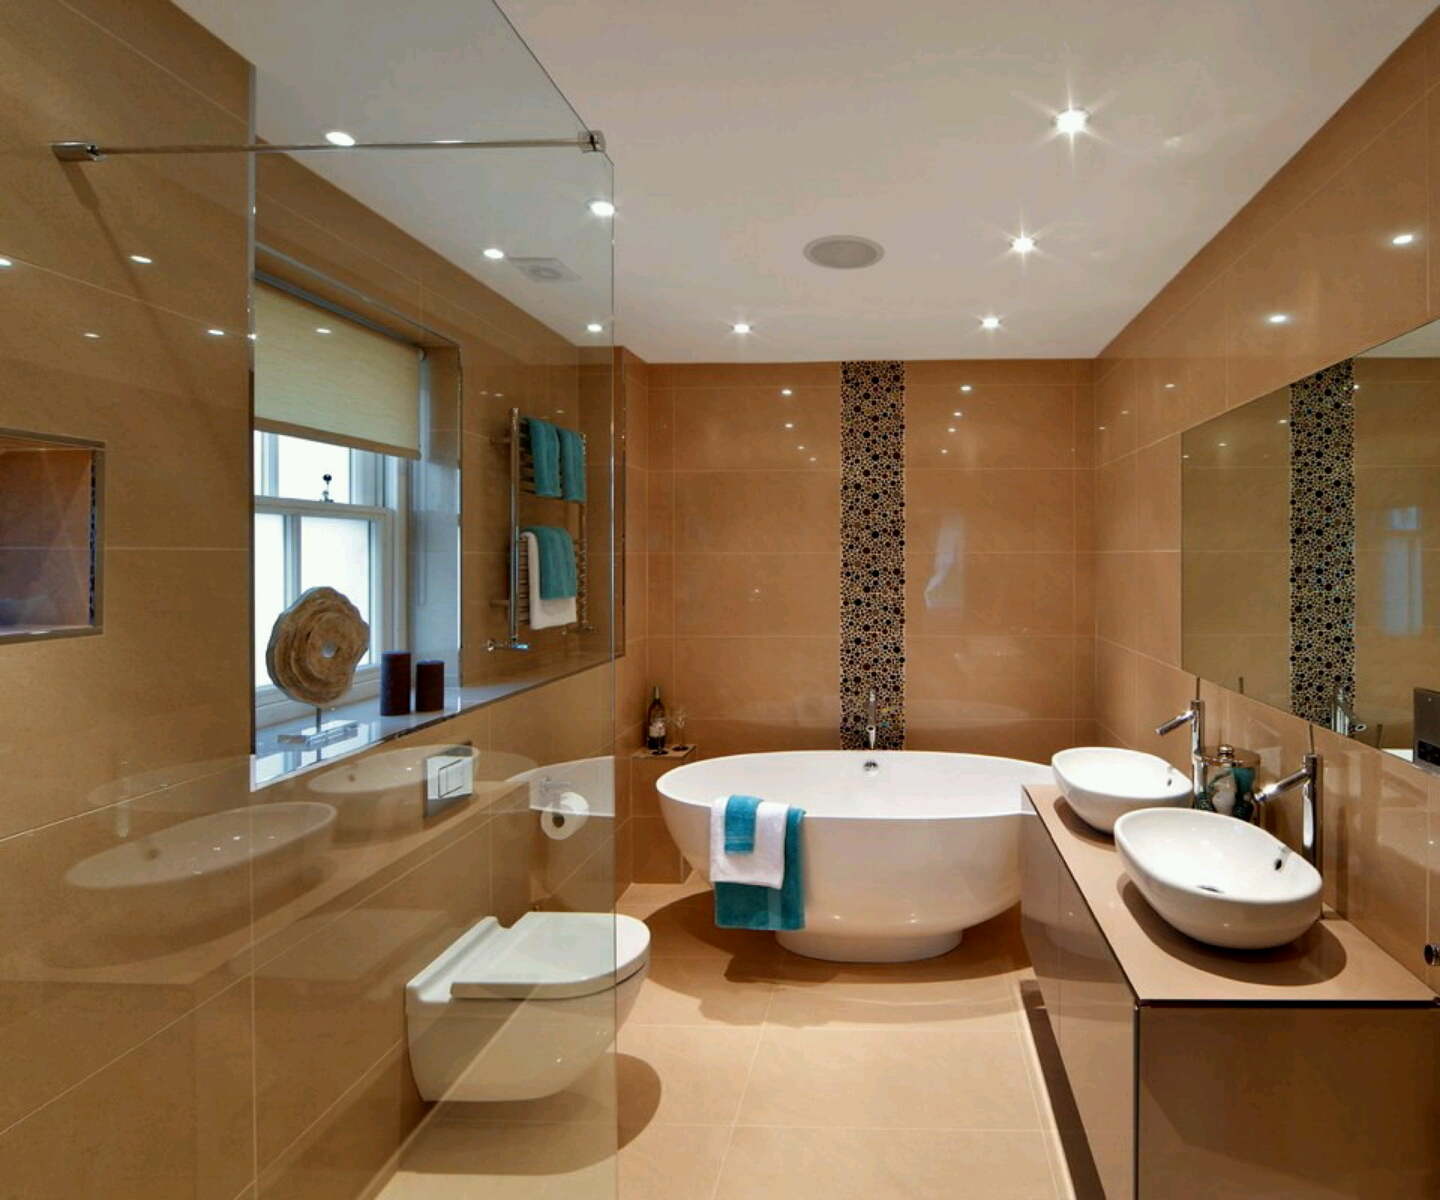 25 small but luxury bathroom design ideas for Bathroom designs photos ideas